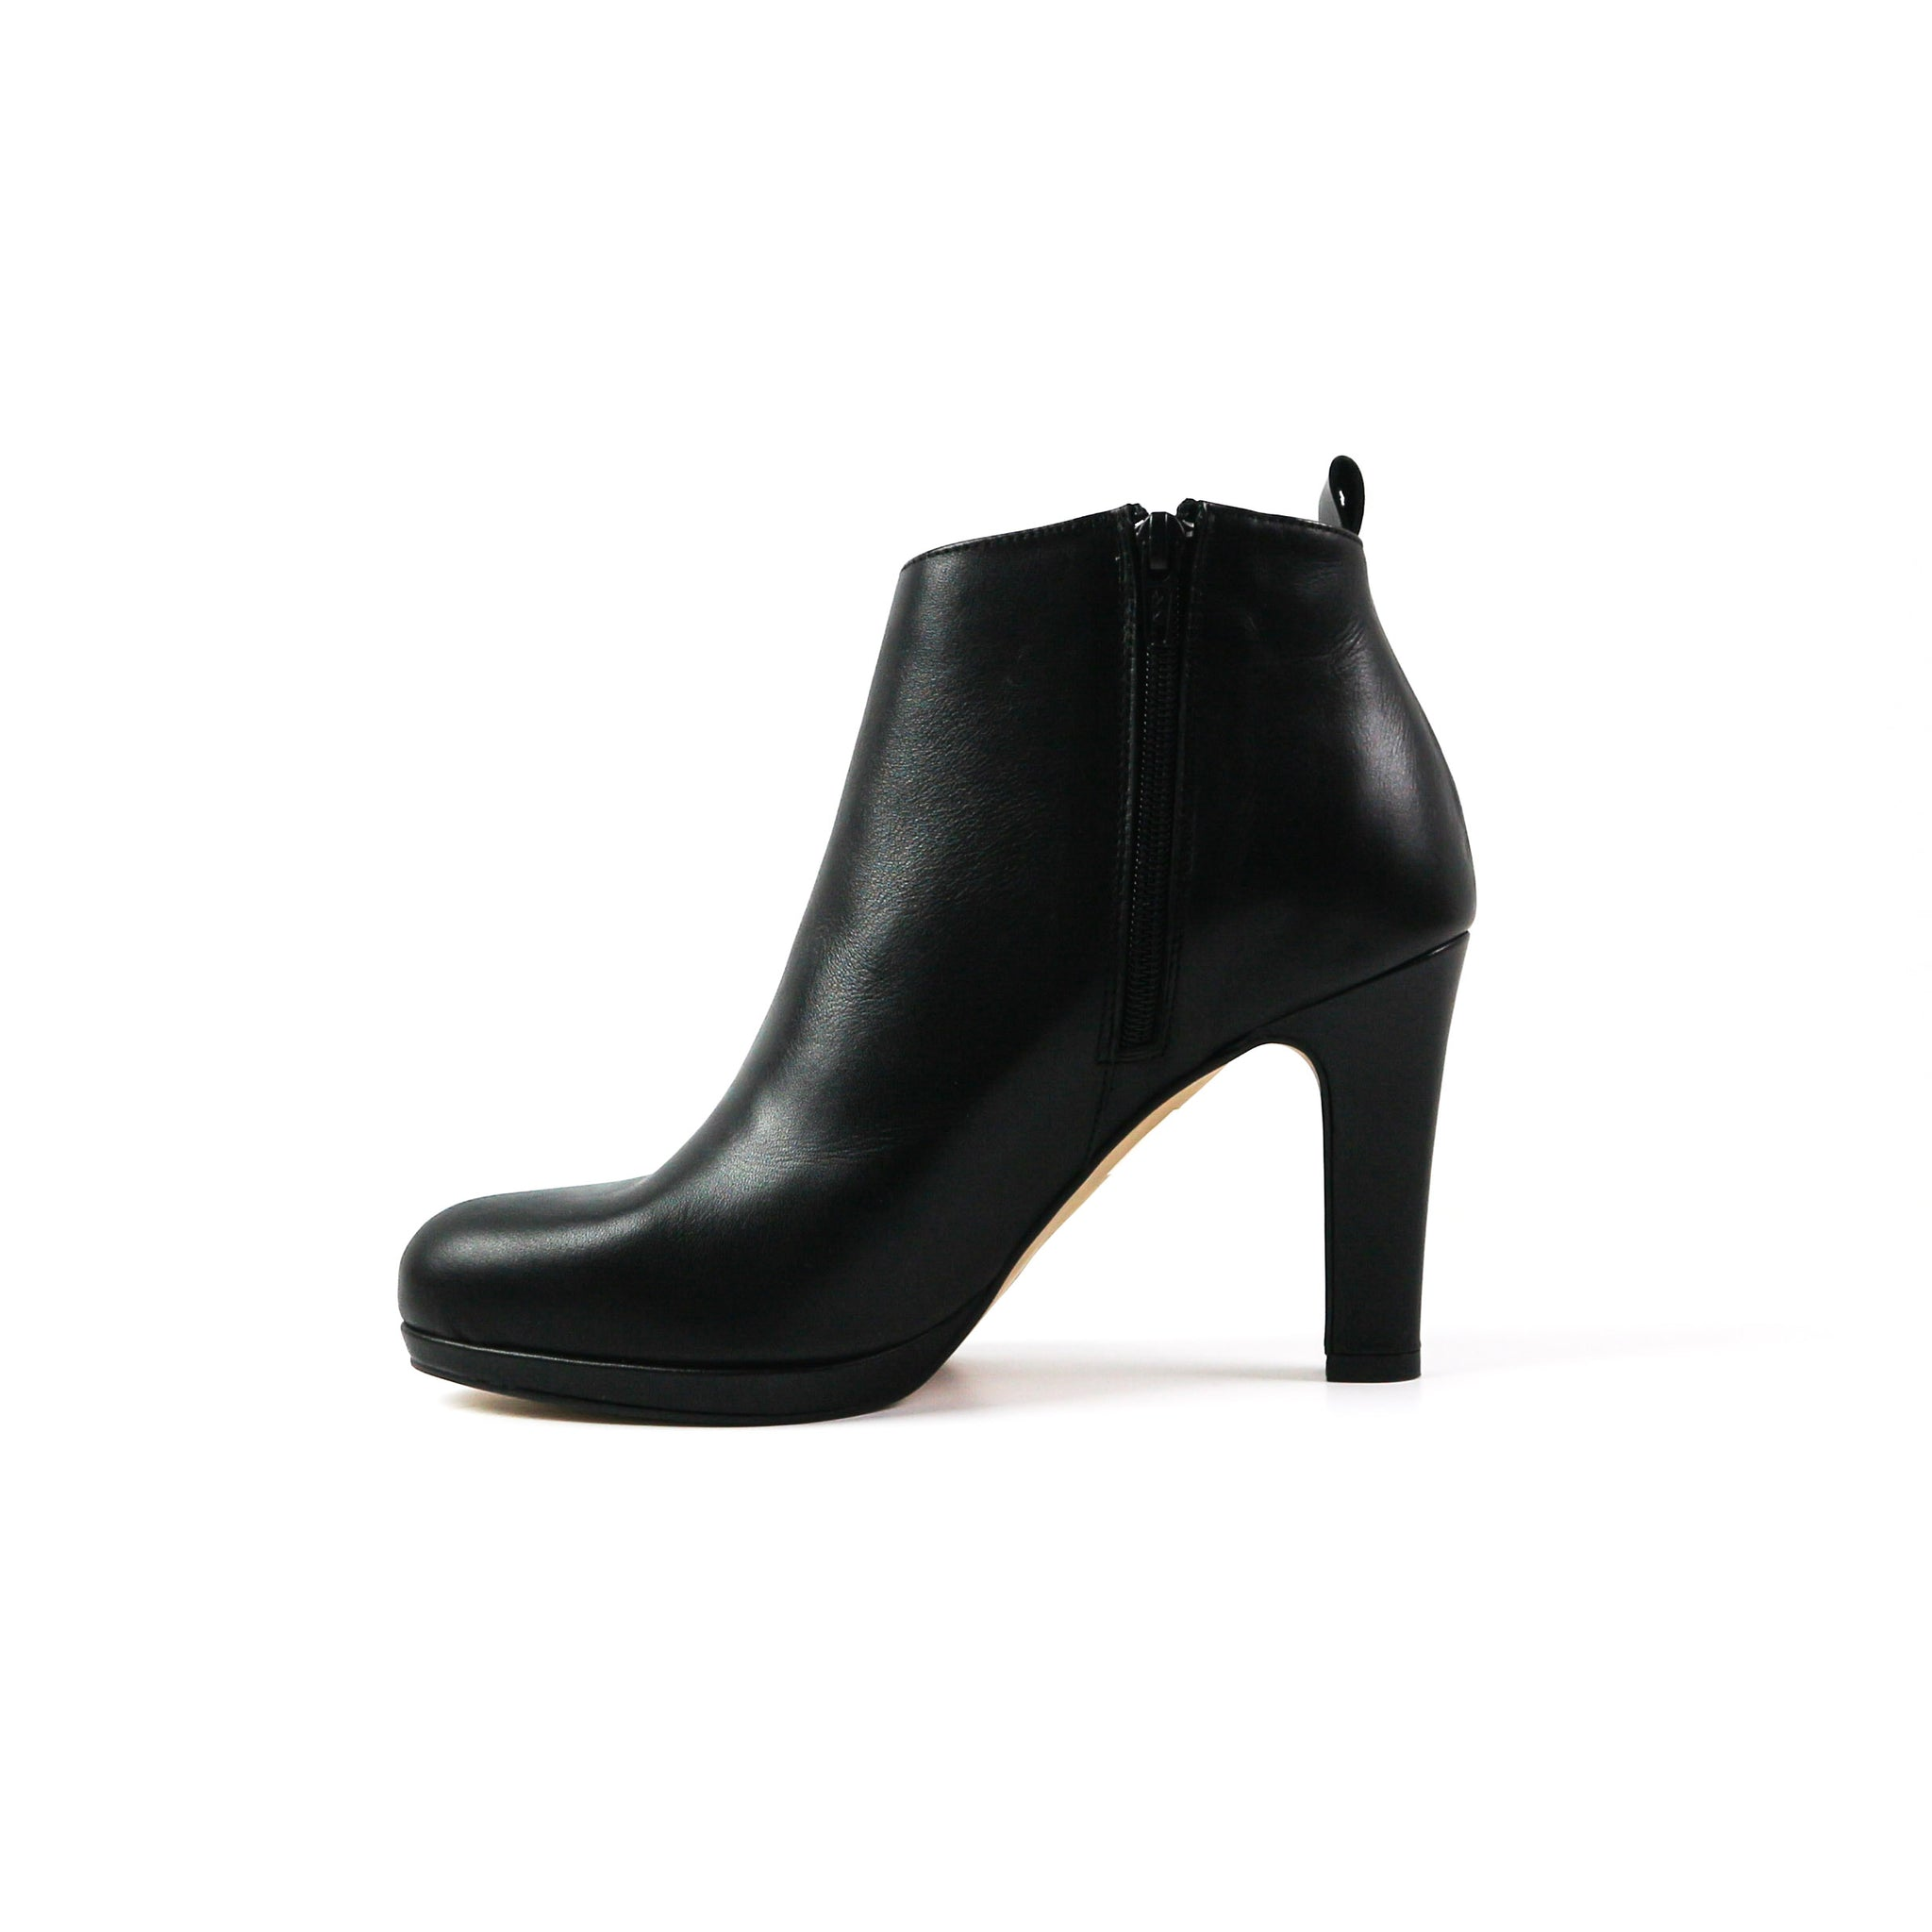 DAWN | Black Zipped Heel - TrystShoes